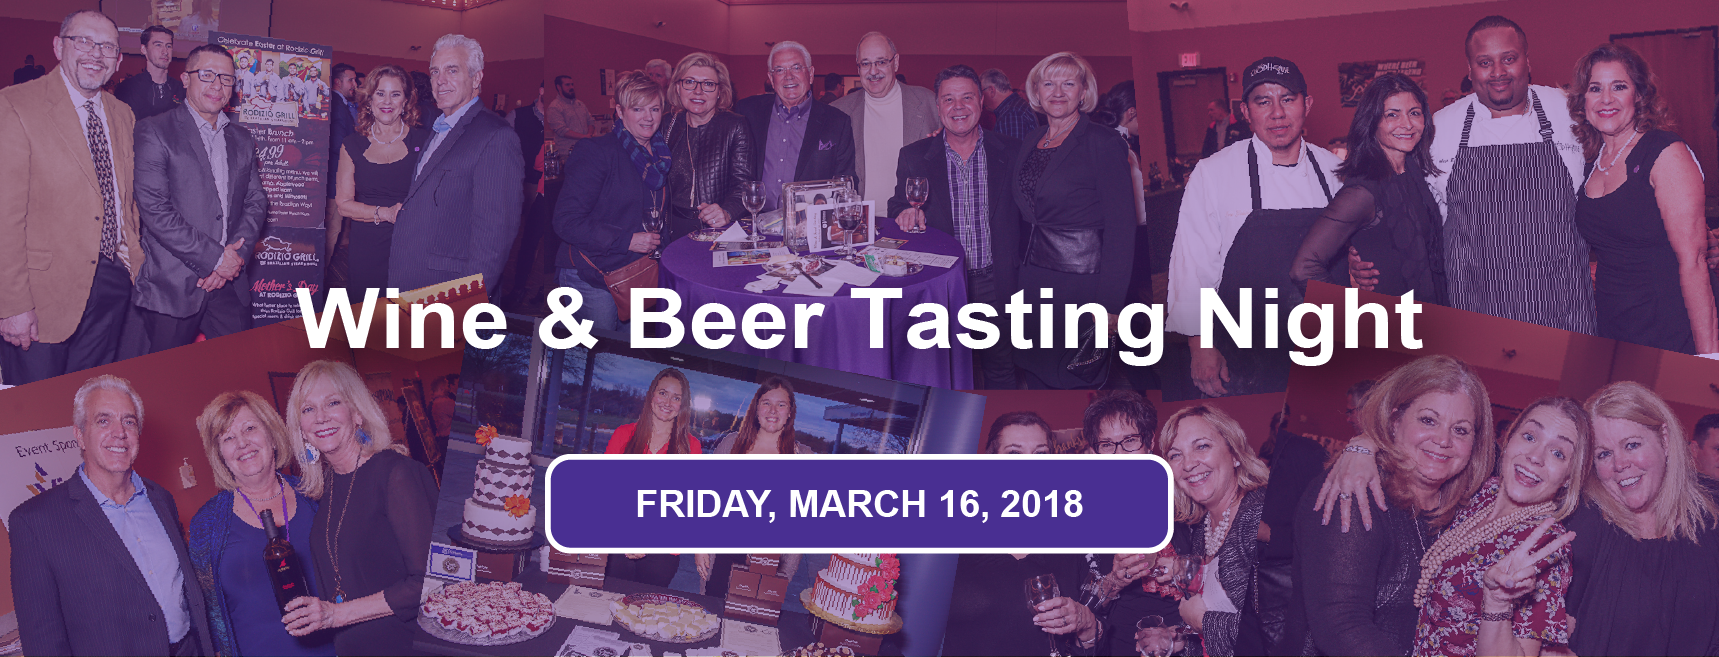 Tasting_Night_FB_Event_Banner-01.png